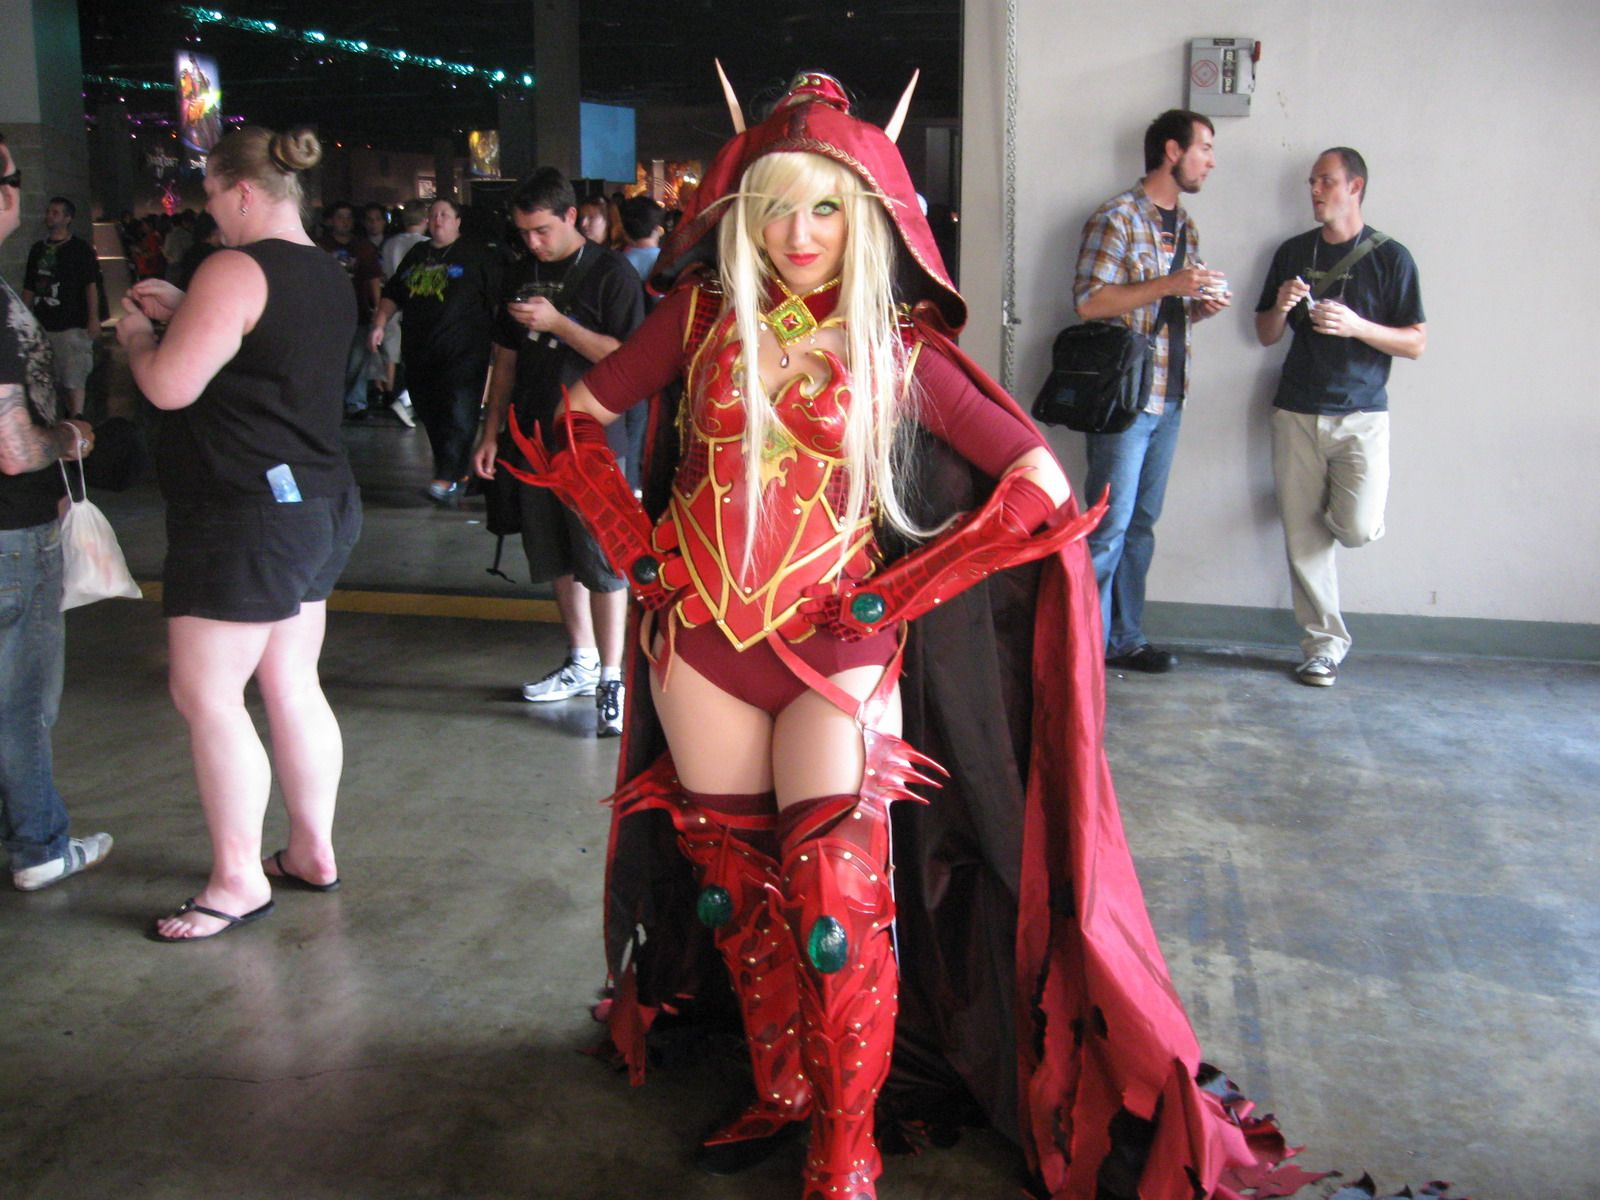 Blood elf babes girl pic pron movies